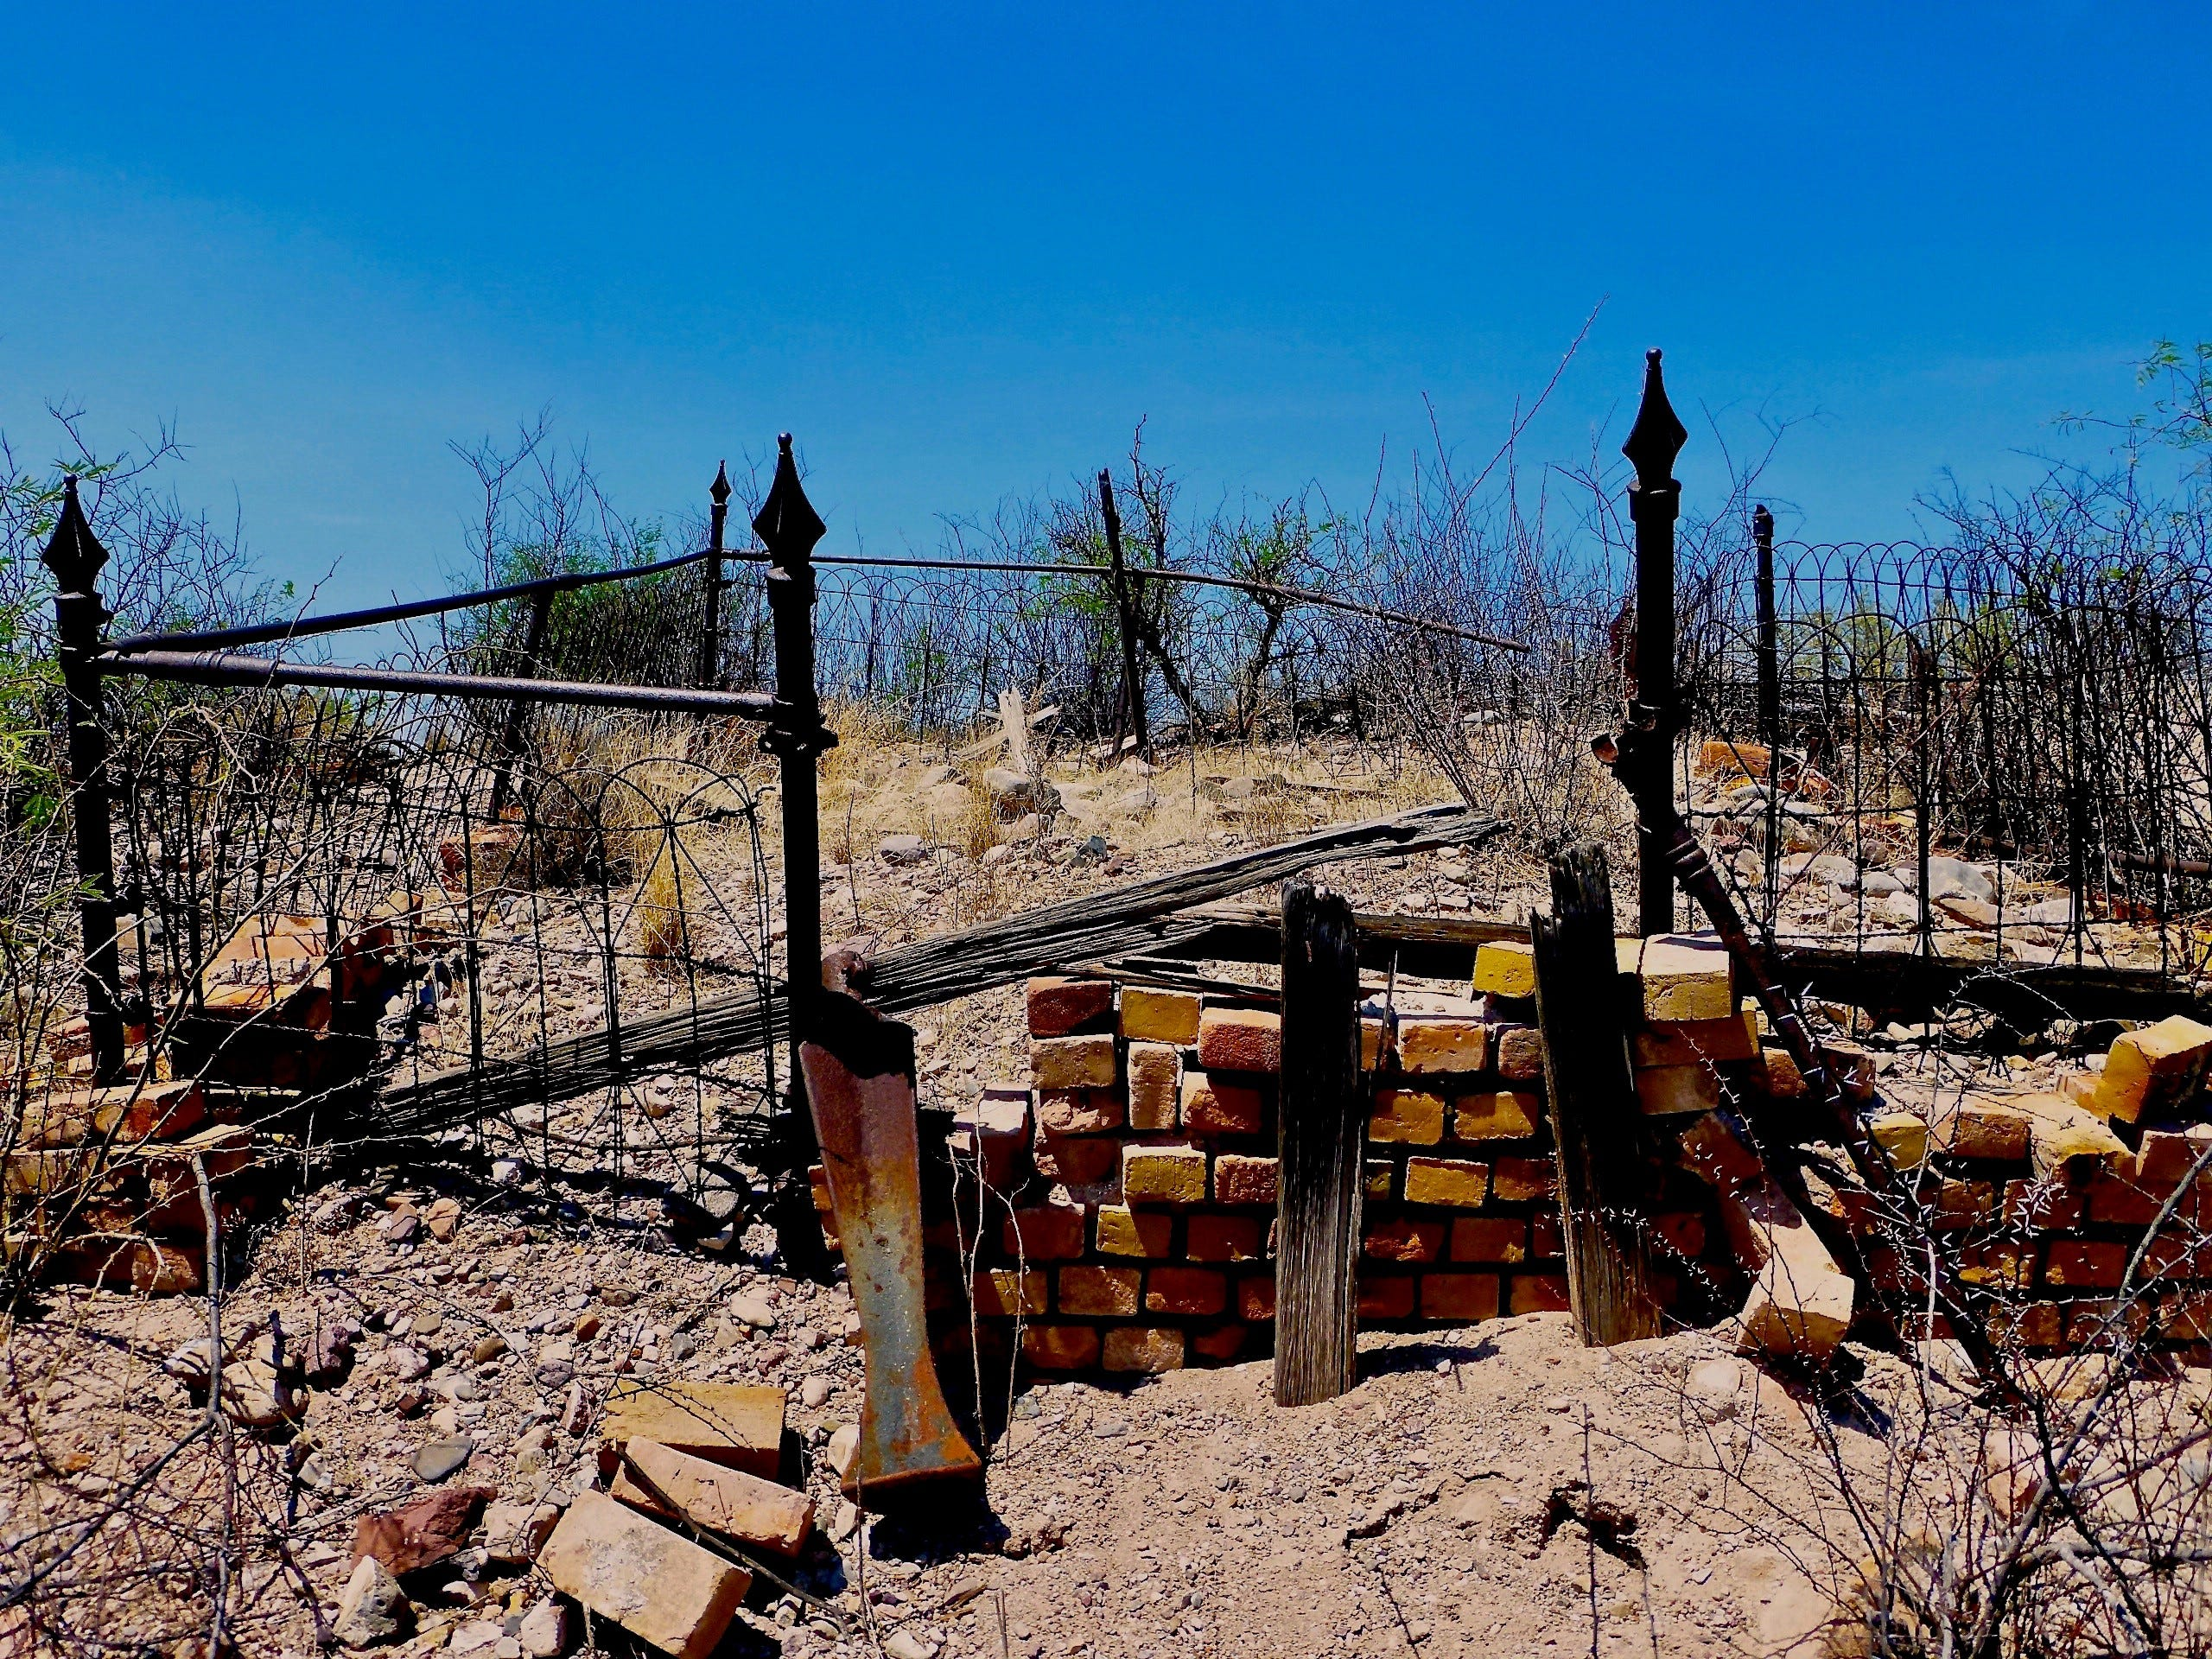 A dilapidated cemetery overlooks the San Pedro River on the edge of Fairbank ghost town in southern Arizona.